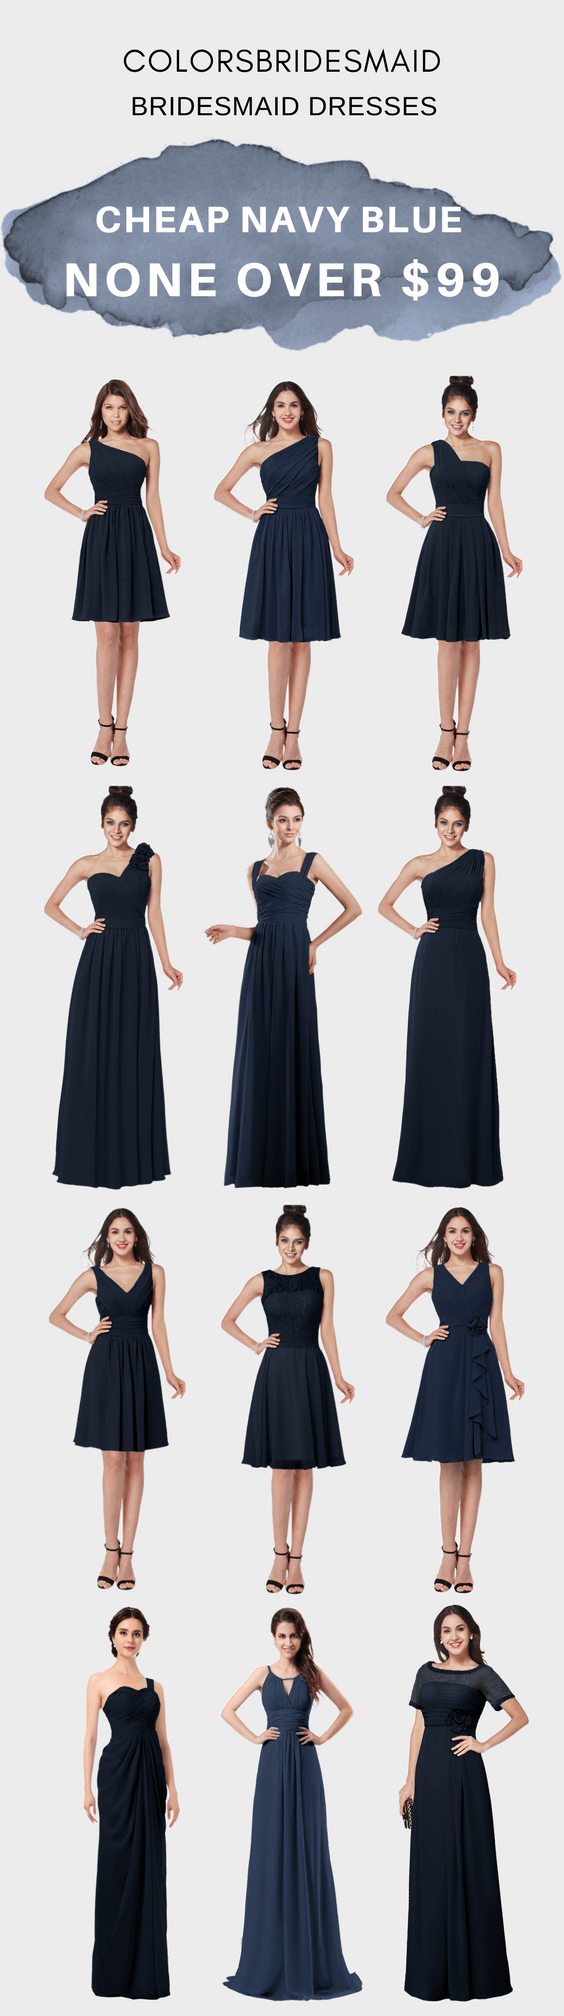 Best Ing Navy Blue Bridesmaid Dresses Under 100